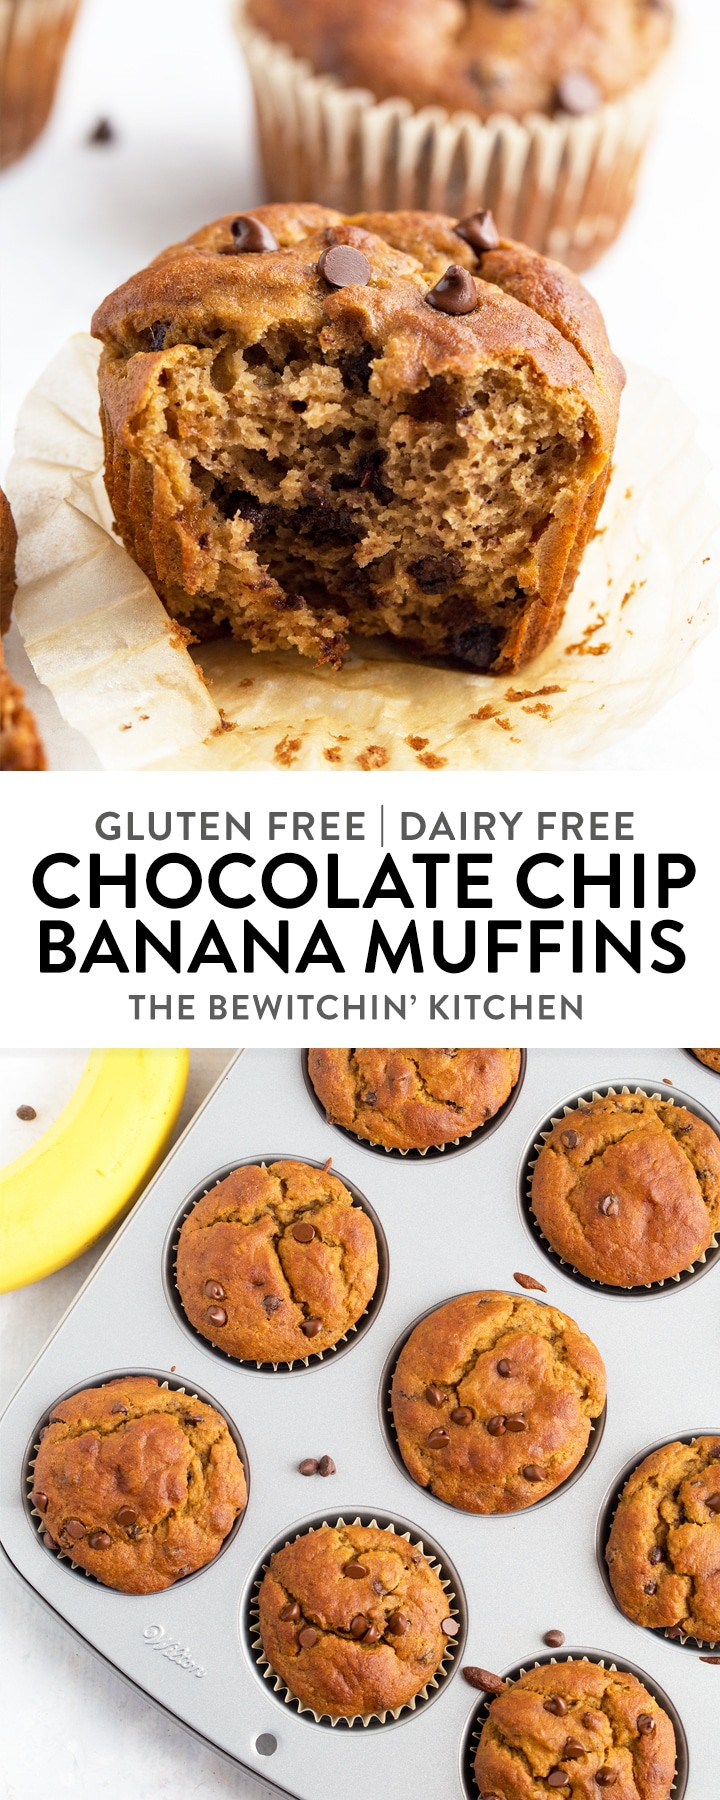 Gluten Free Banana Chocolate Chip Muffins - this allergy friendly recipe is both gluten free and dairy free. This healthy recipe is easy and great for kids! #thebewitchinkitchen #glutenfreemuffins #dairyfreebaking #glutenfreebaking #bananachocolatechipmuffins #glutenfreebananachocolatechipmuffins